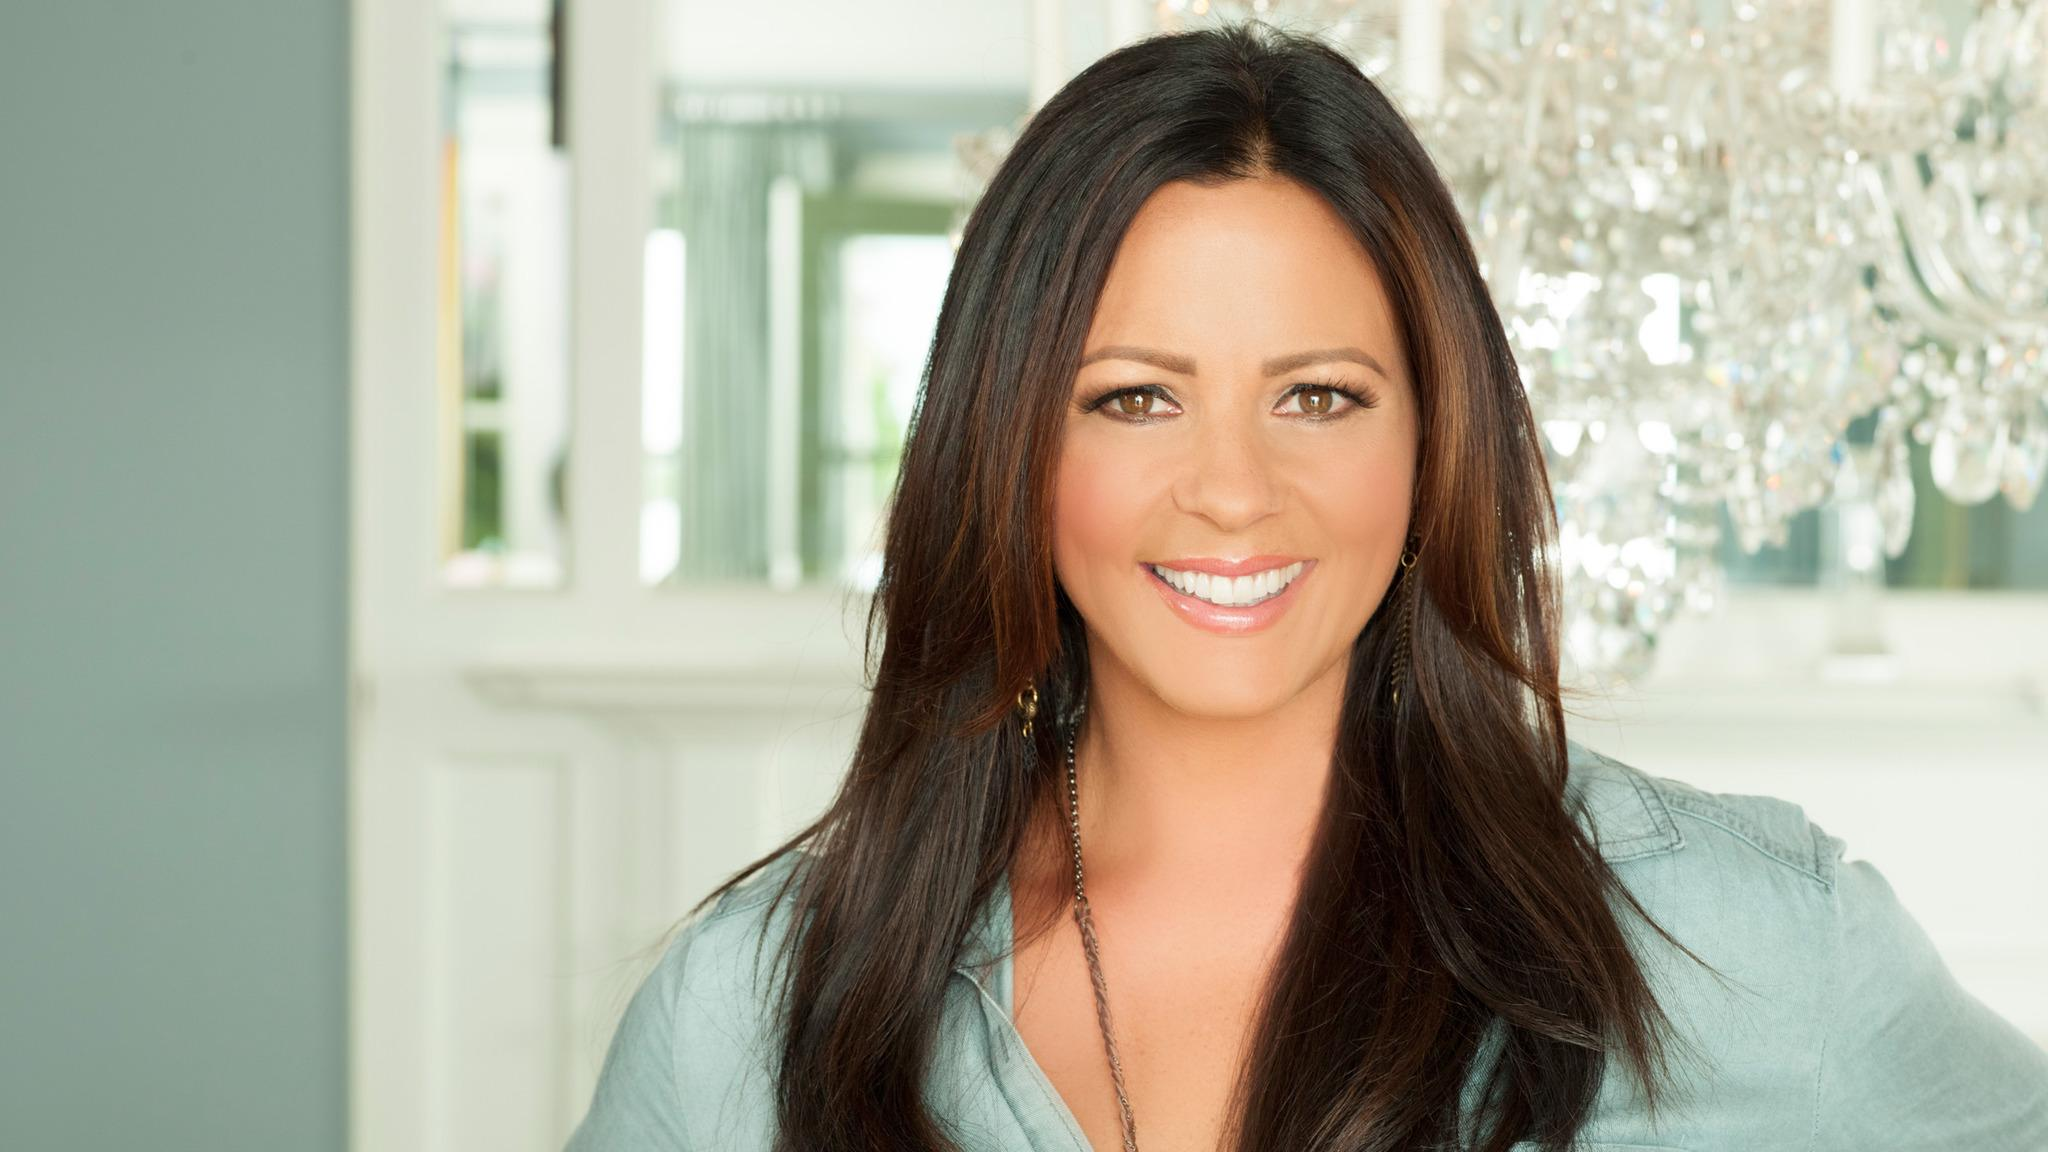 Sara Evans, Caroline Jones at Helena Civic Center - Helena, MT 59601